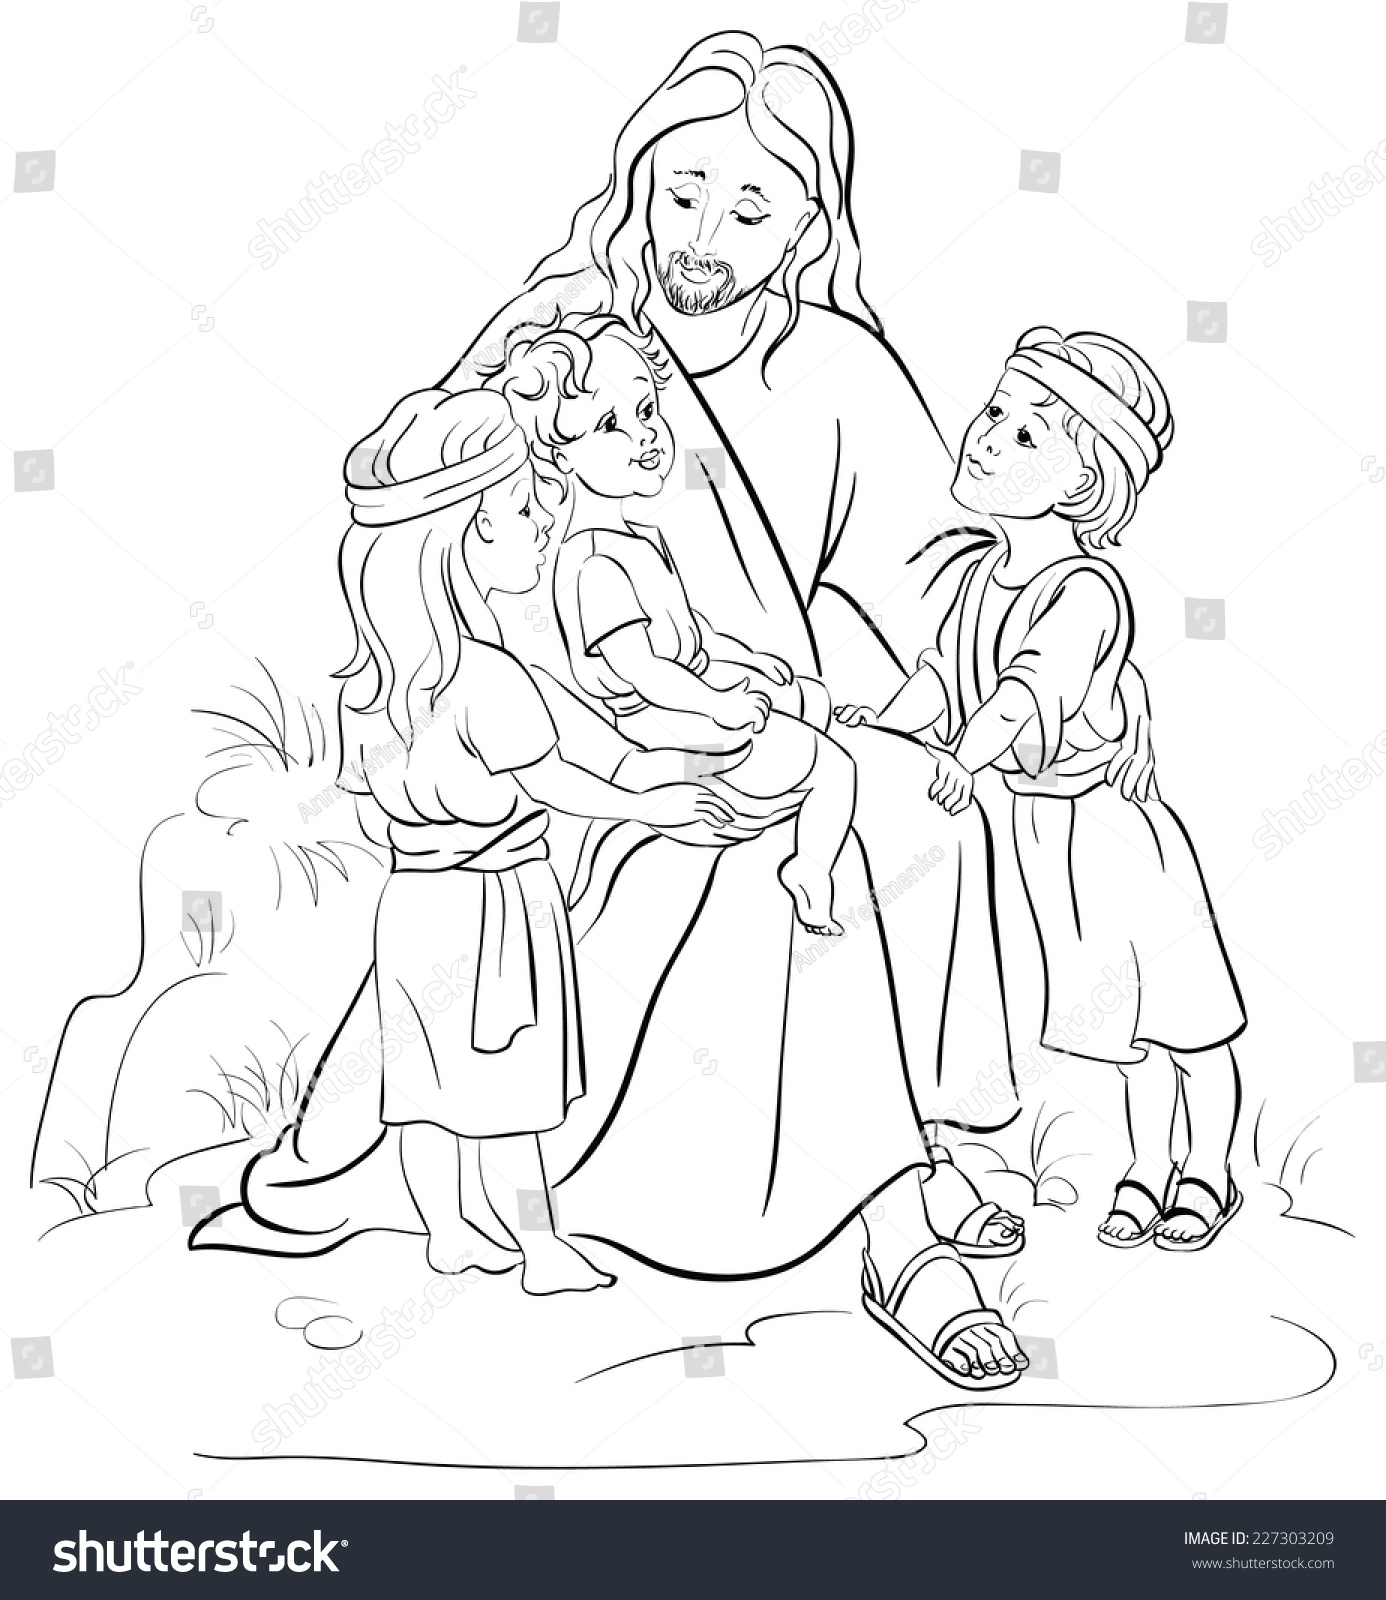 jesus the good shepherd coloring pages - bible story jesus children coloring page